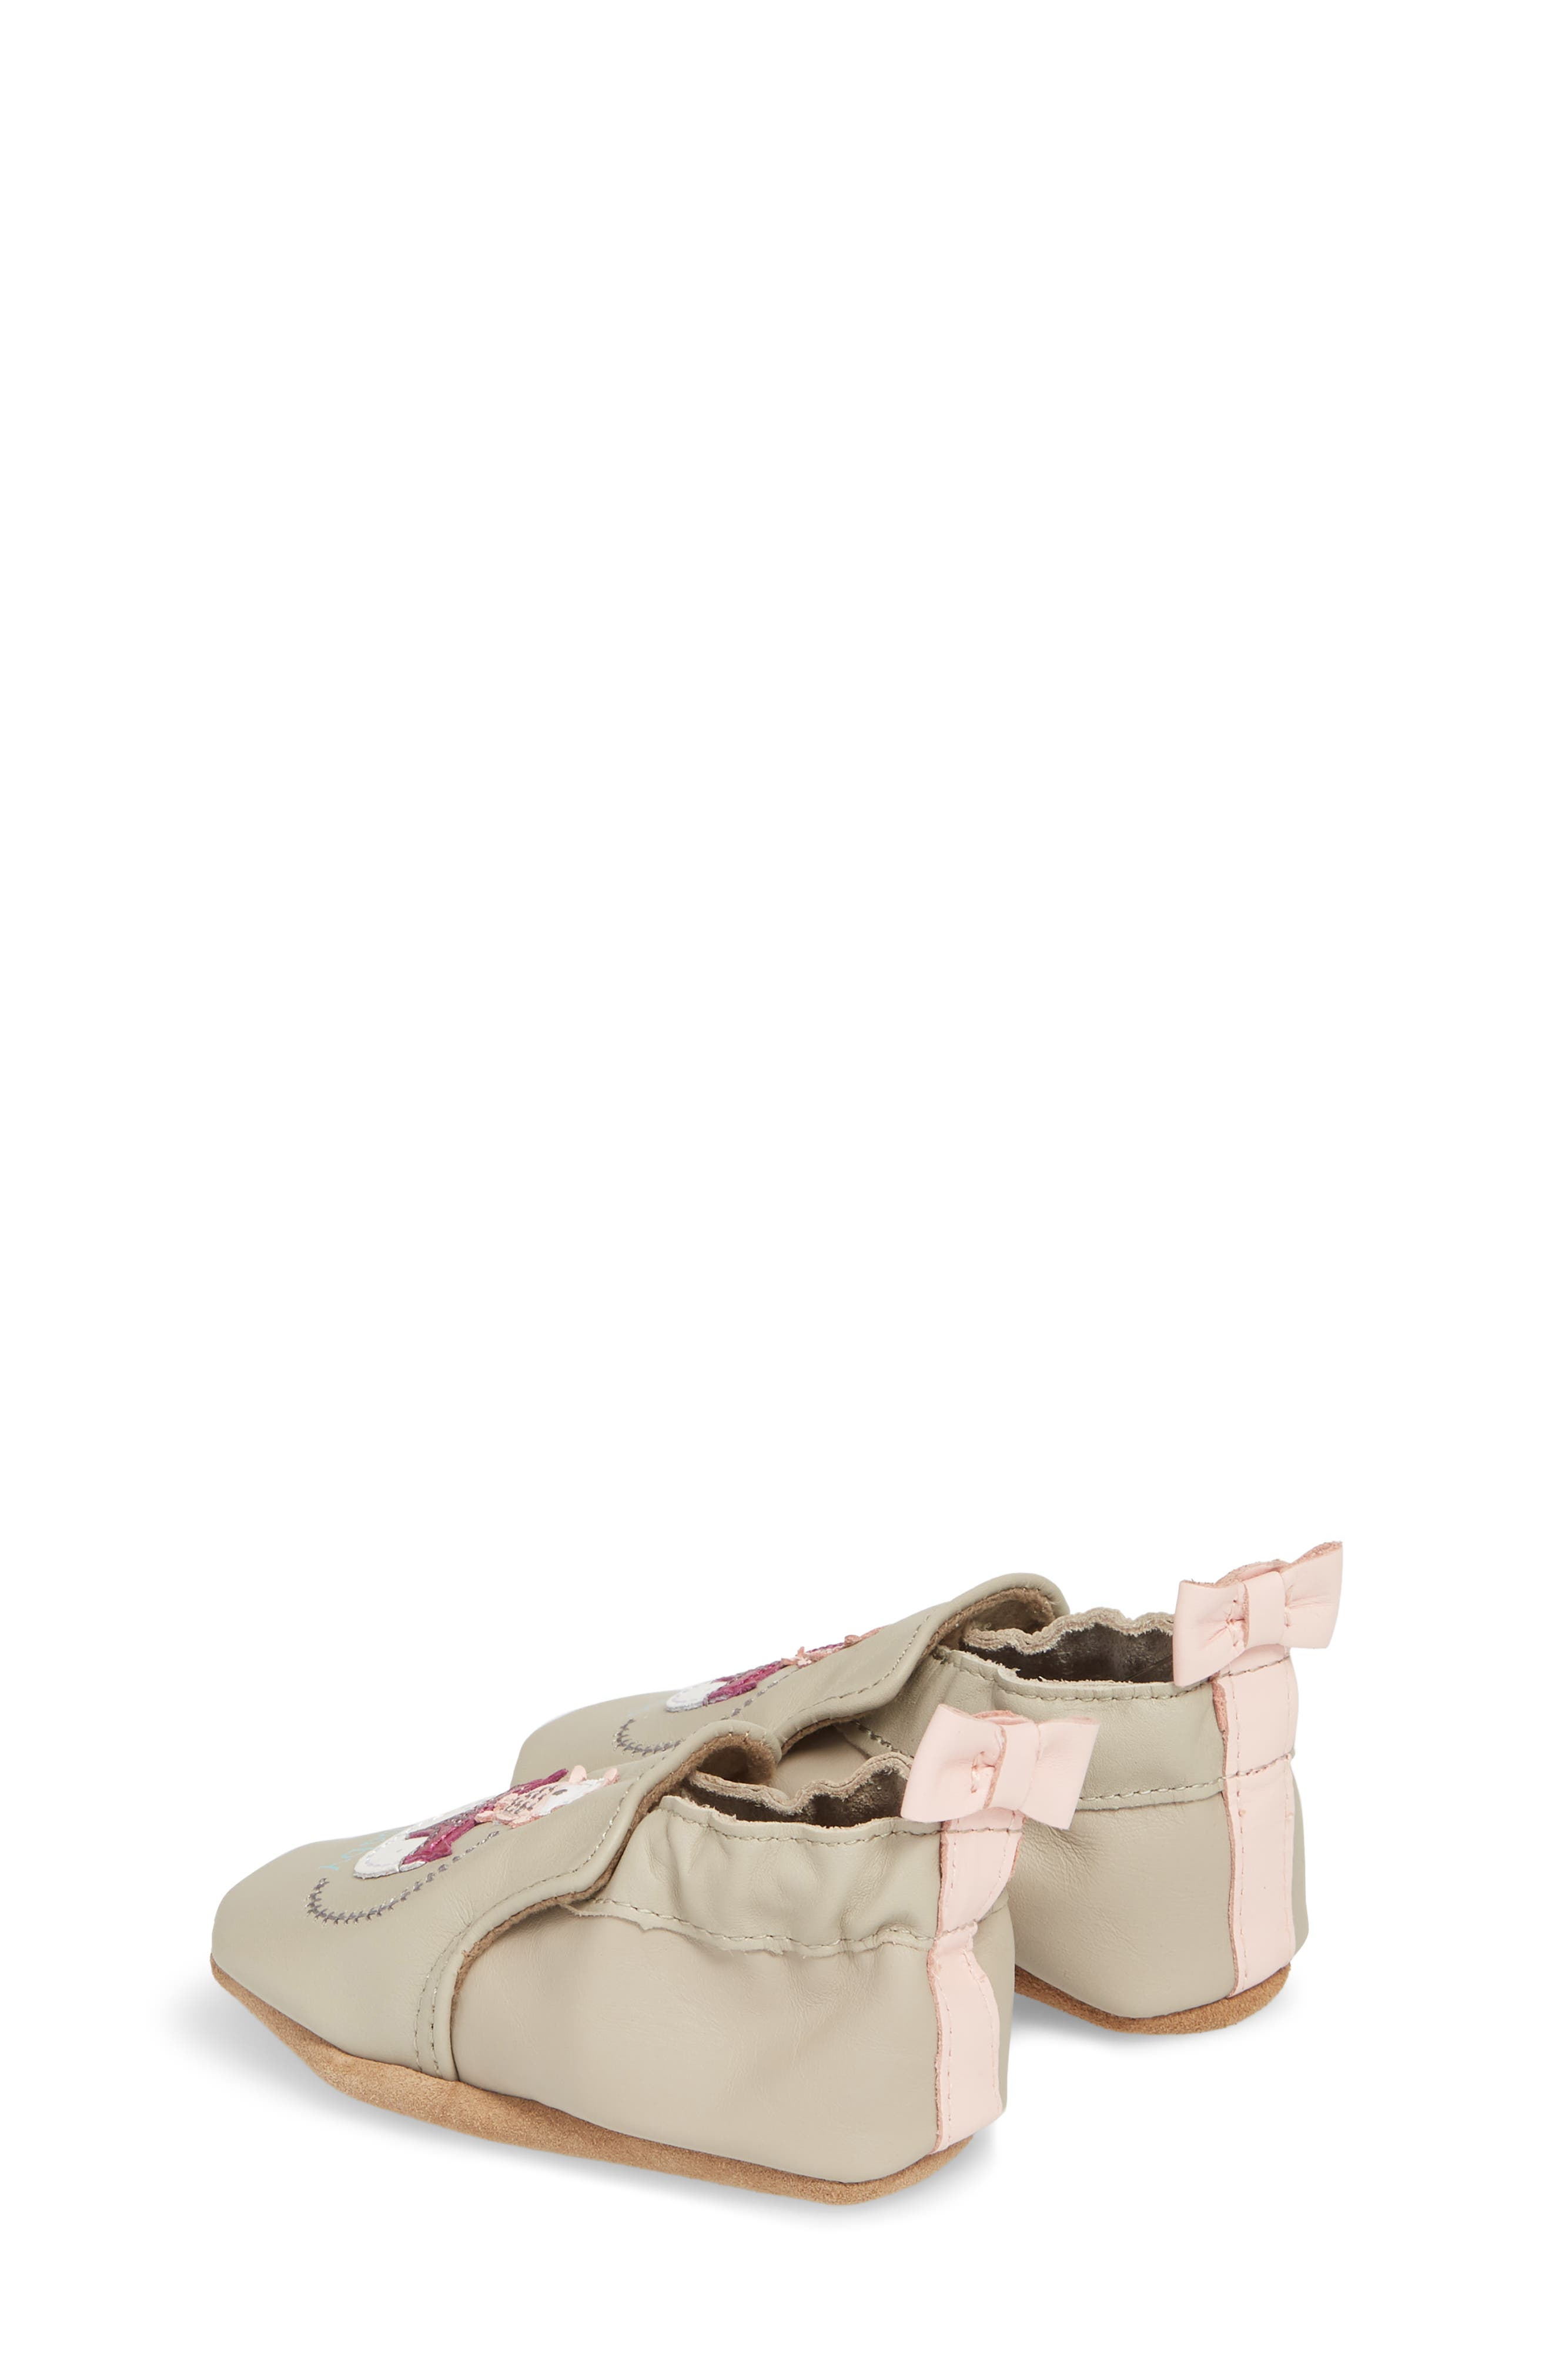 Hello Baby Friends Moccasin Crib Shoe,                             Alternate thumbnail 2, color,                             Light Grey